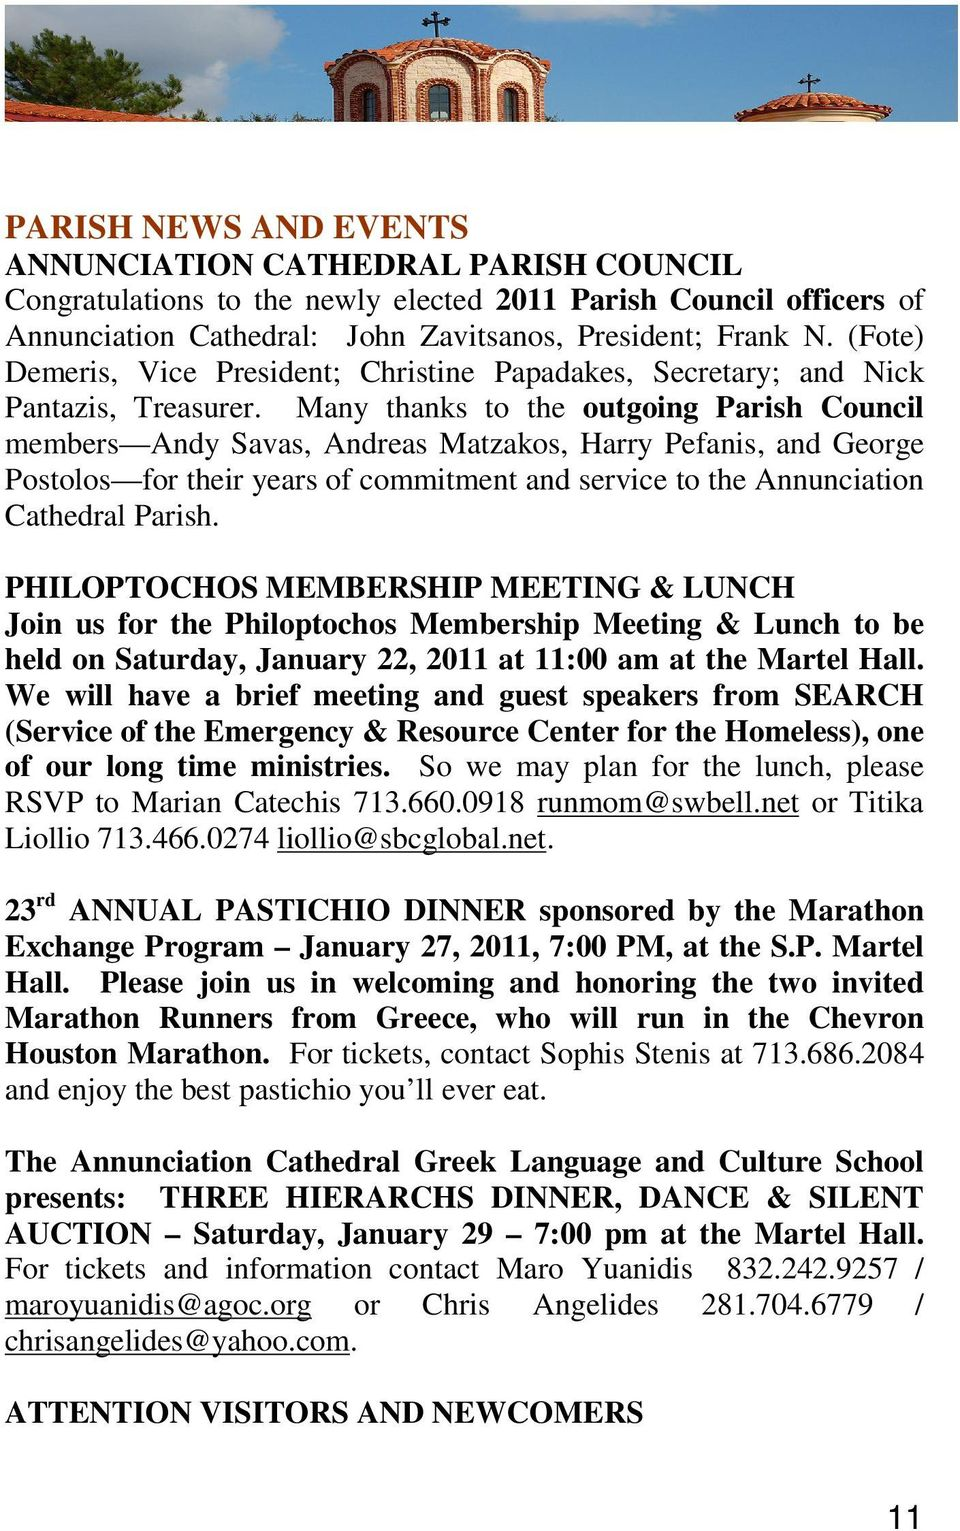 Many thanks to the outgoing Parish Council members Andy Savas, Andreas Matzakos, Harry Pefanis, and George Postolos for their years of commitment and service to the Annunciation Cathedral Parish.